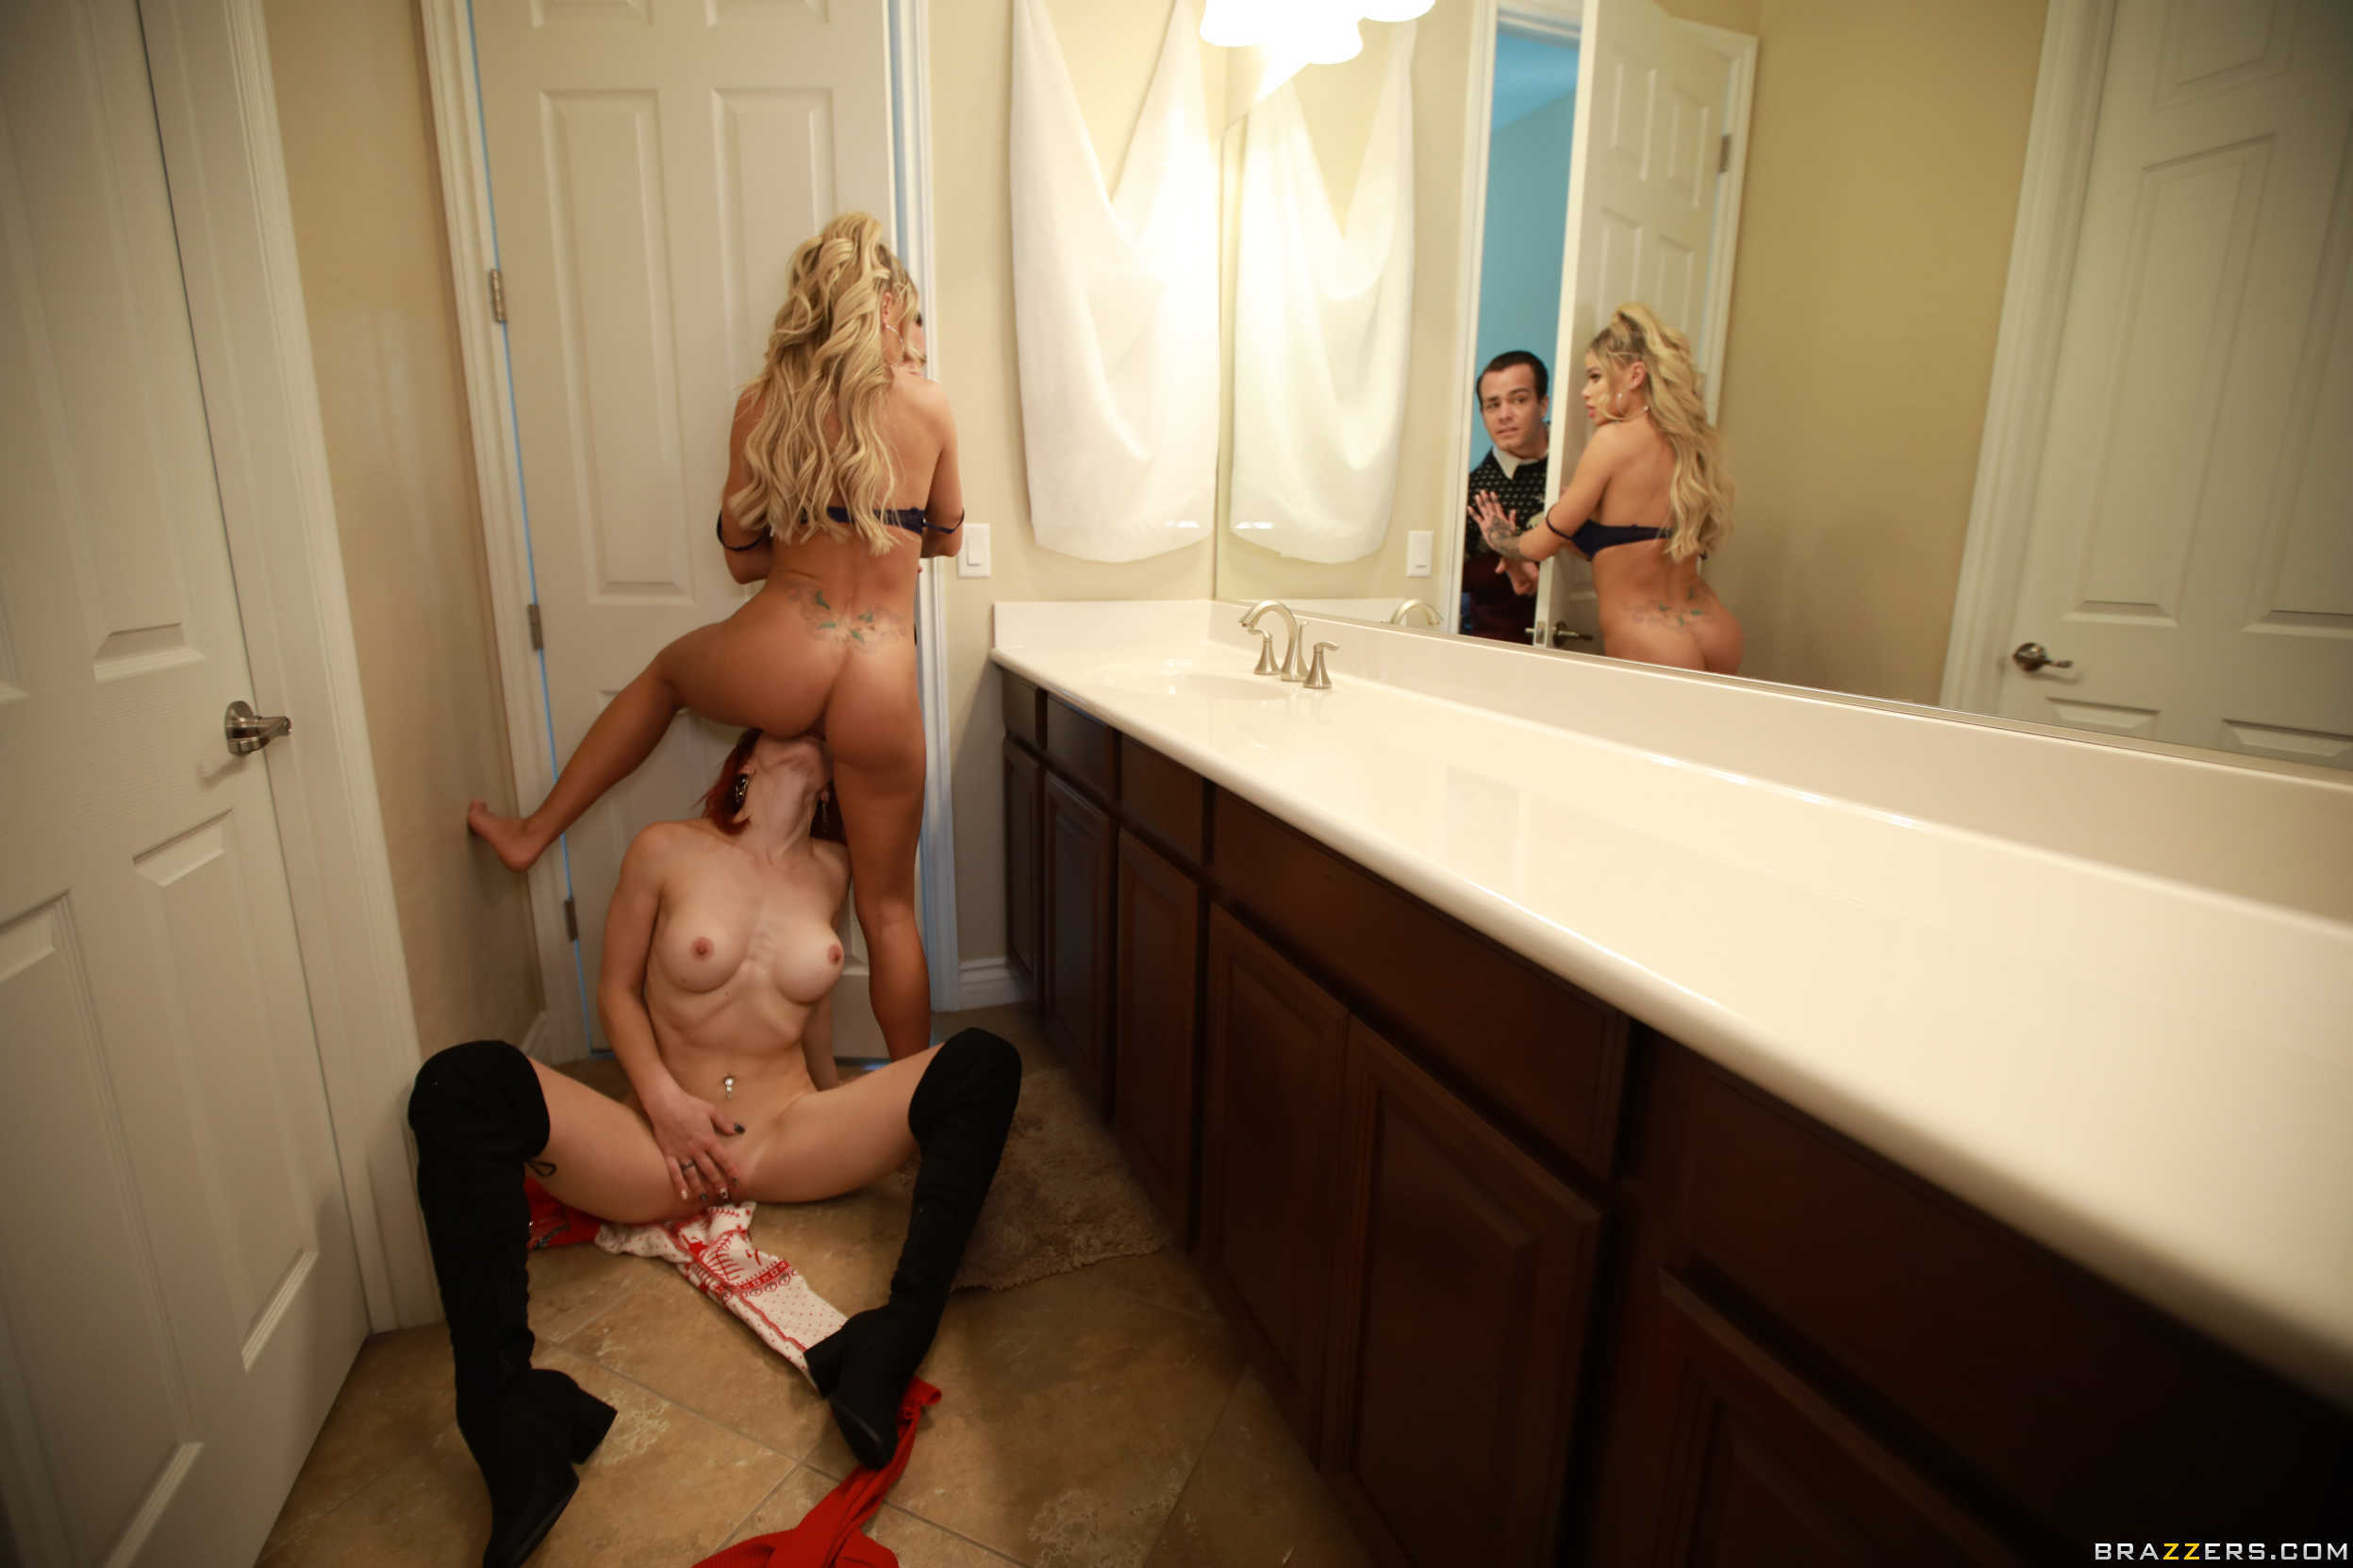 Brazzers: Jessa Rhodes & Molly Stewart - Horny For The Holidays